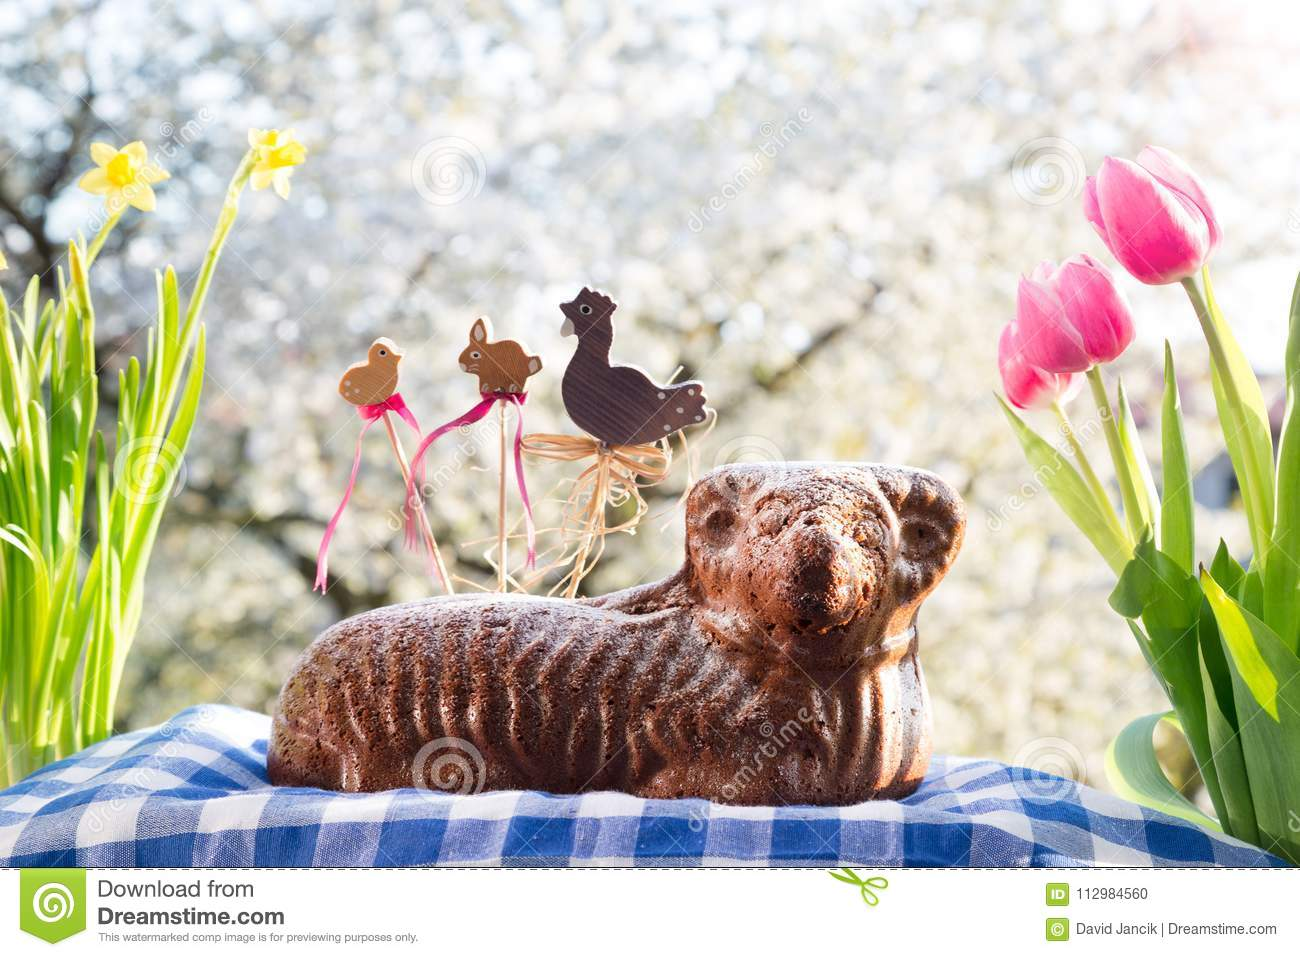 Czech Easter - baked lamb with decorations, flowers and flowering cherry in the background